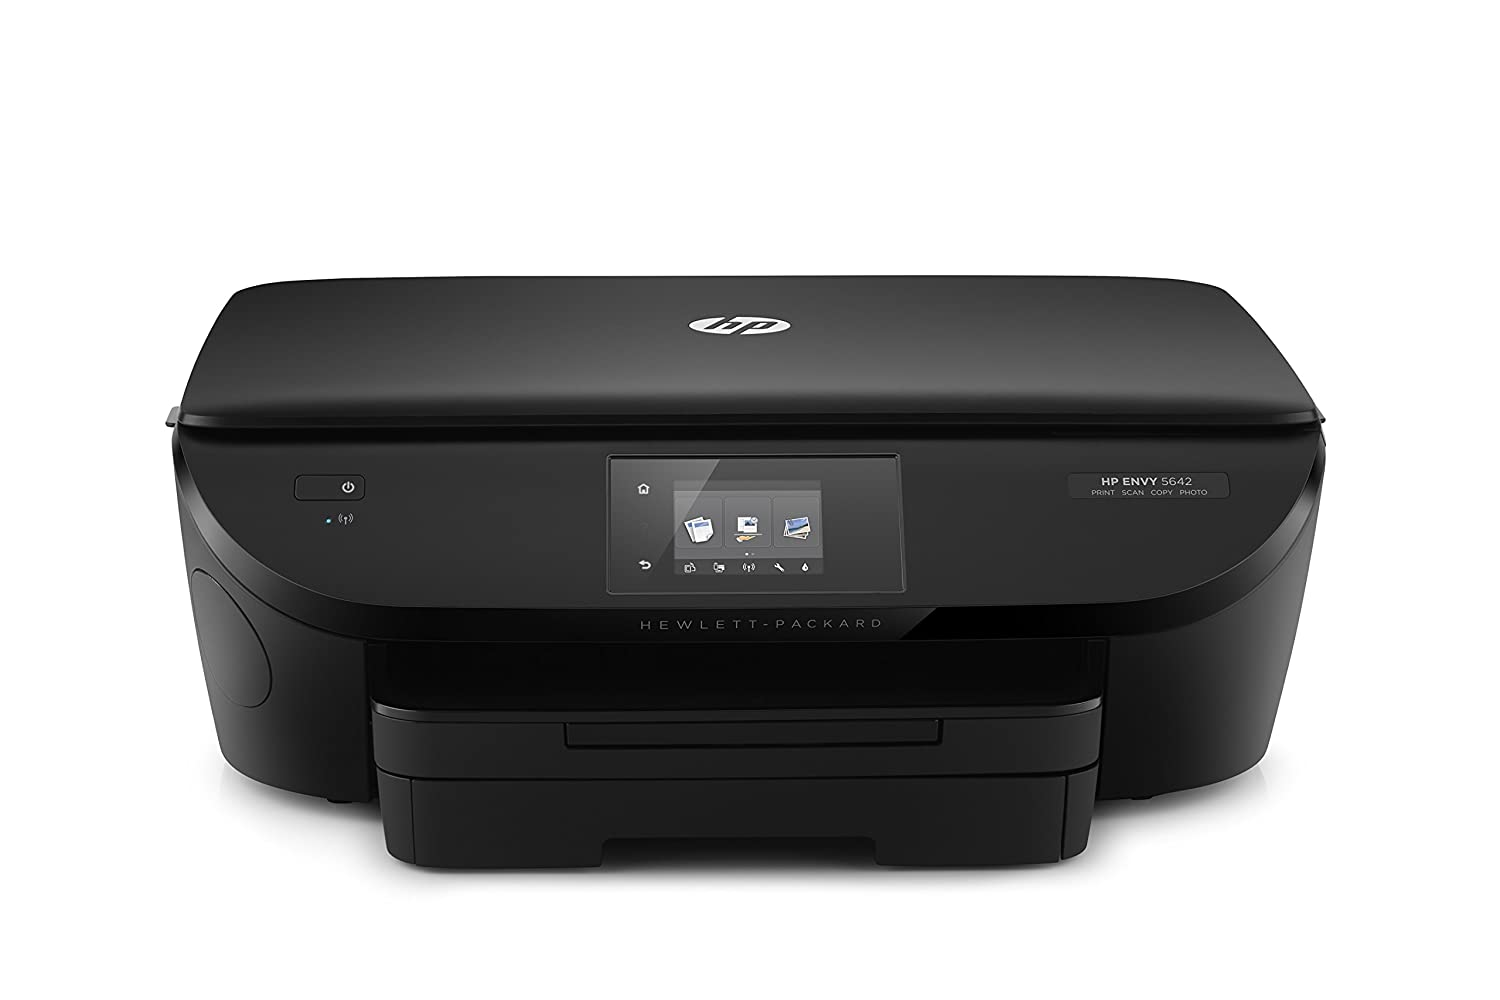 Amazon.com: HP Envy 5642 Wireless All in One Photo Printer with Mobile  Printing, Instant Ink Ready (B9S61A): Electronics